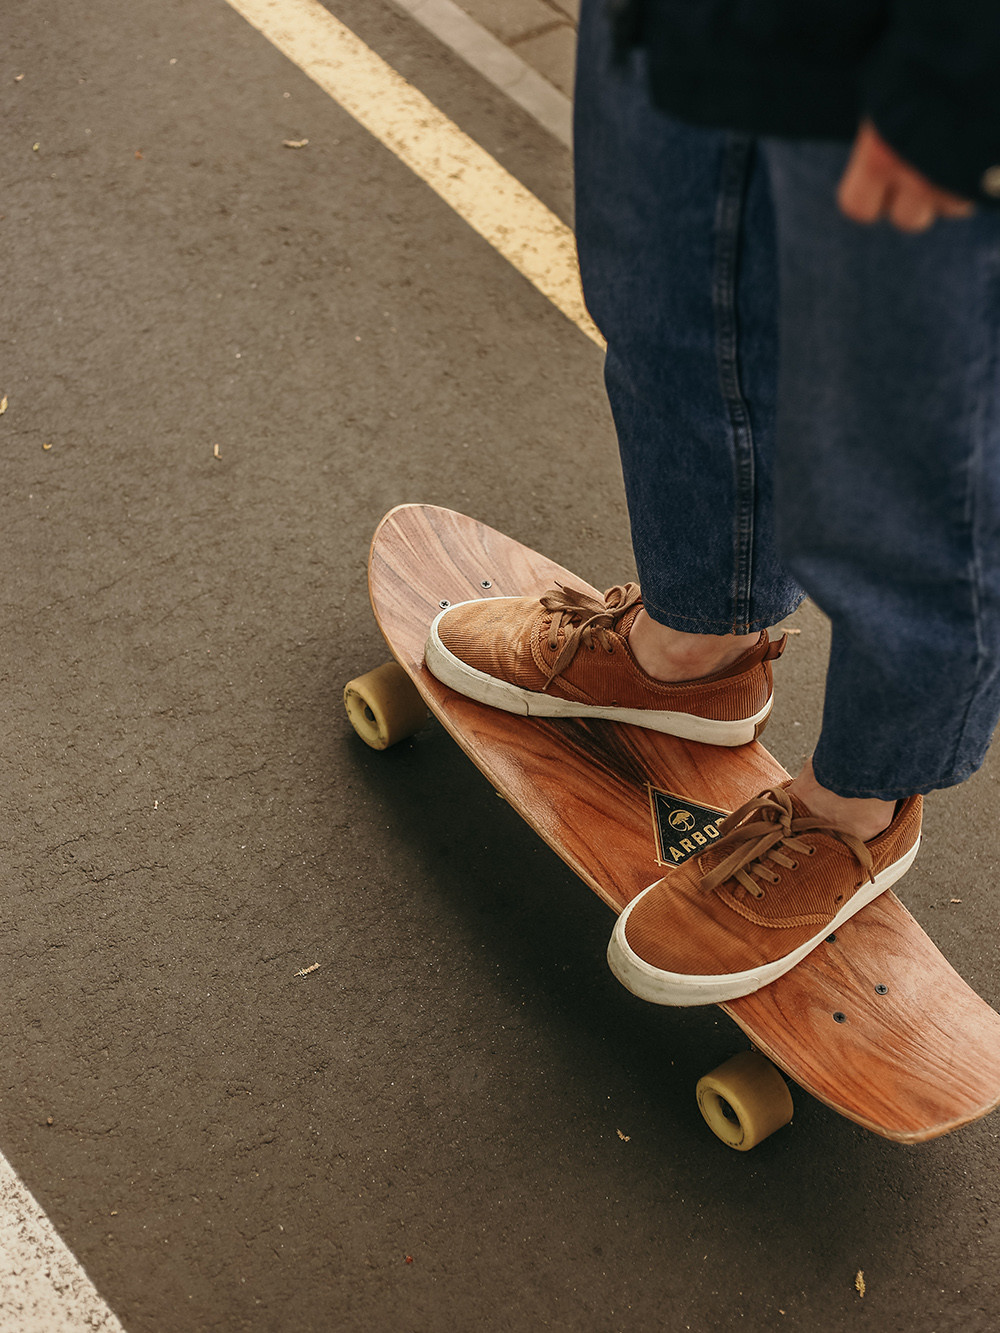 person on a skateboard